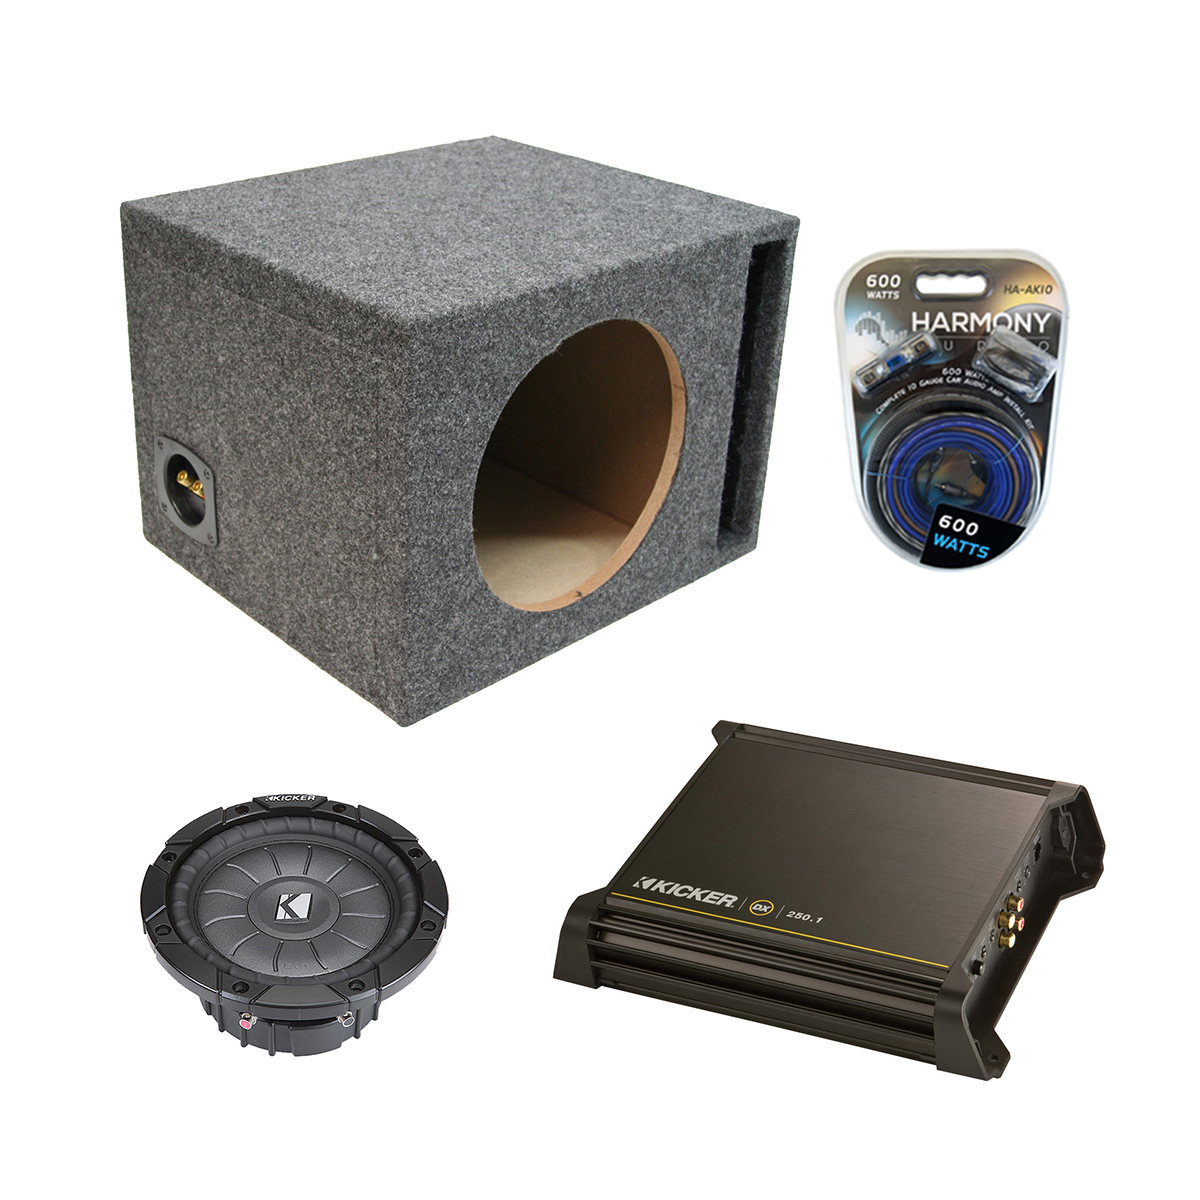 hight resolution of kicker single 10 powered vented cvt10 sub box w dx250 1 amp u0026 10kicker single 10 powered vented cvt10 sub box w dx250 1 amp u0026 10 gauge kit